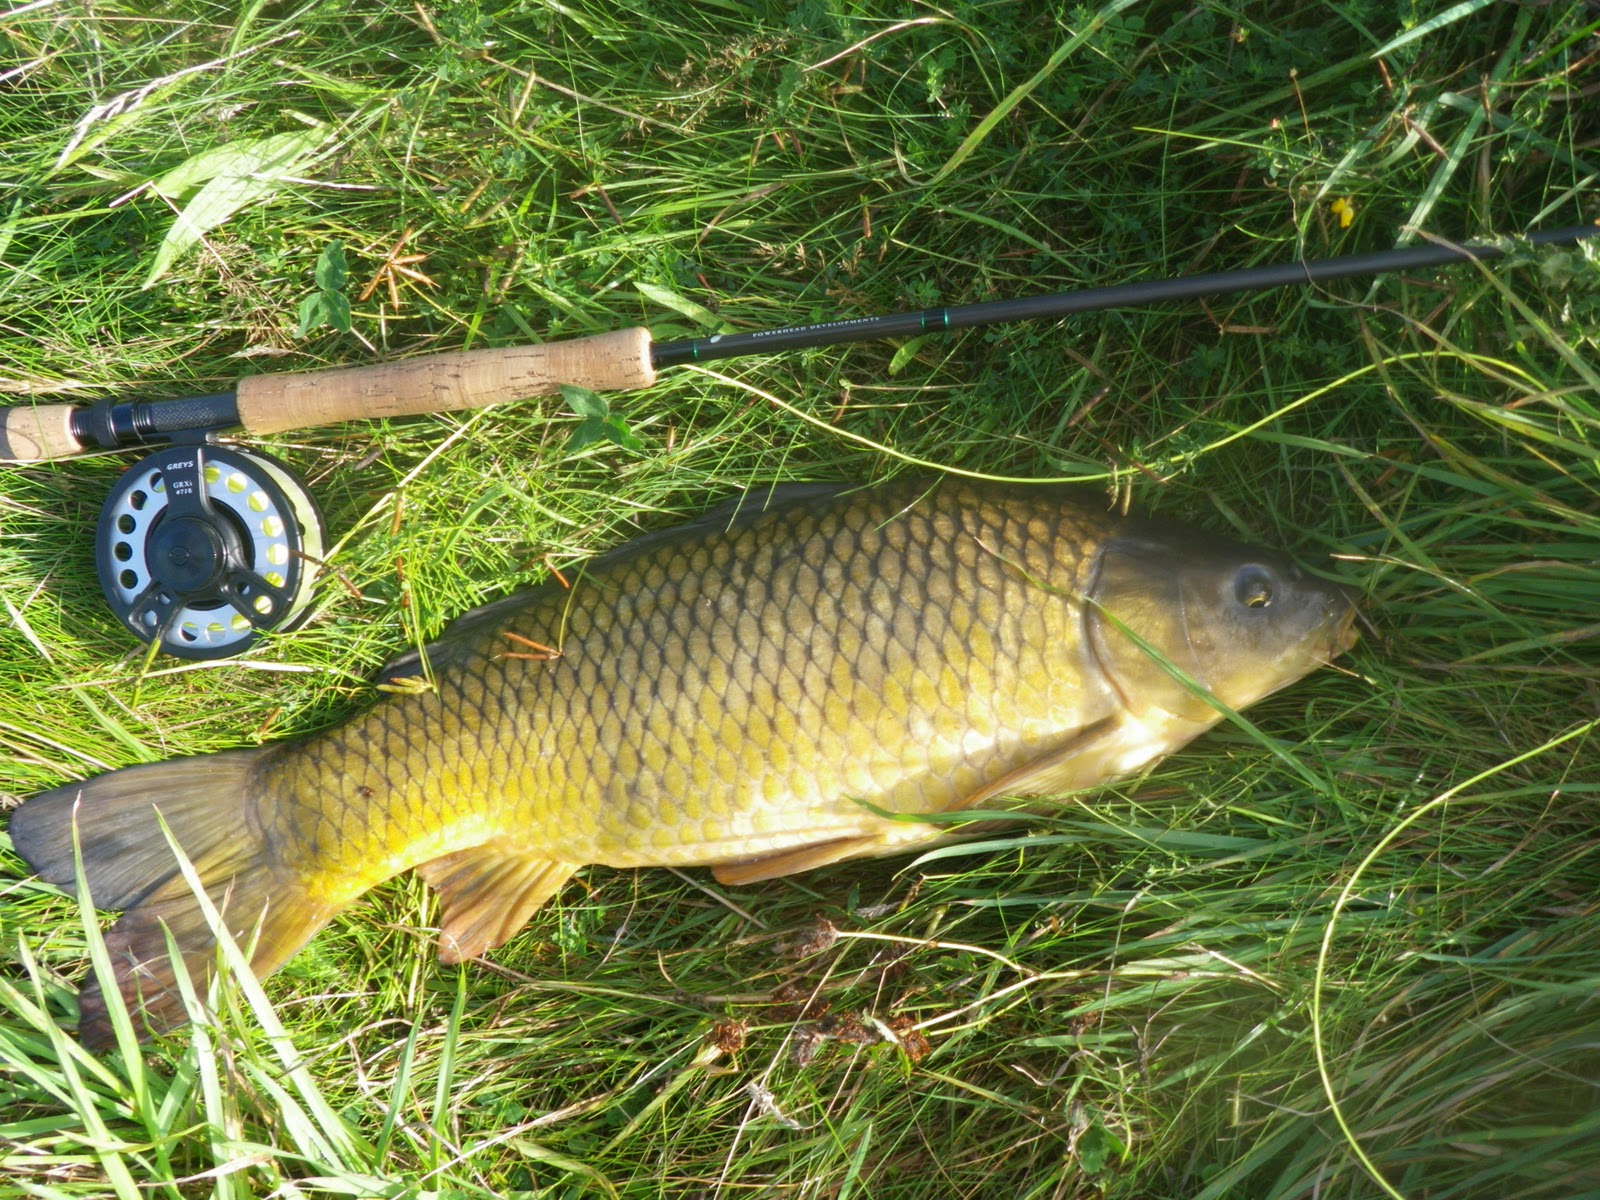 Fly fishing and other adventures thenford lakes carp on for Fly fishing carp